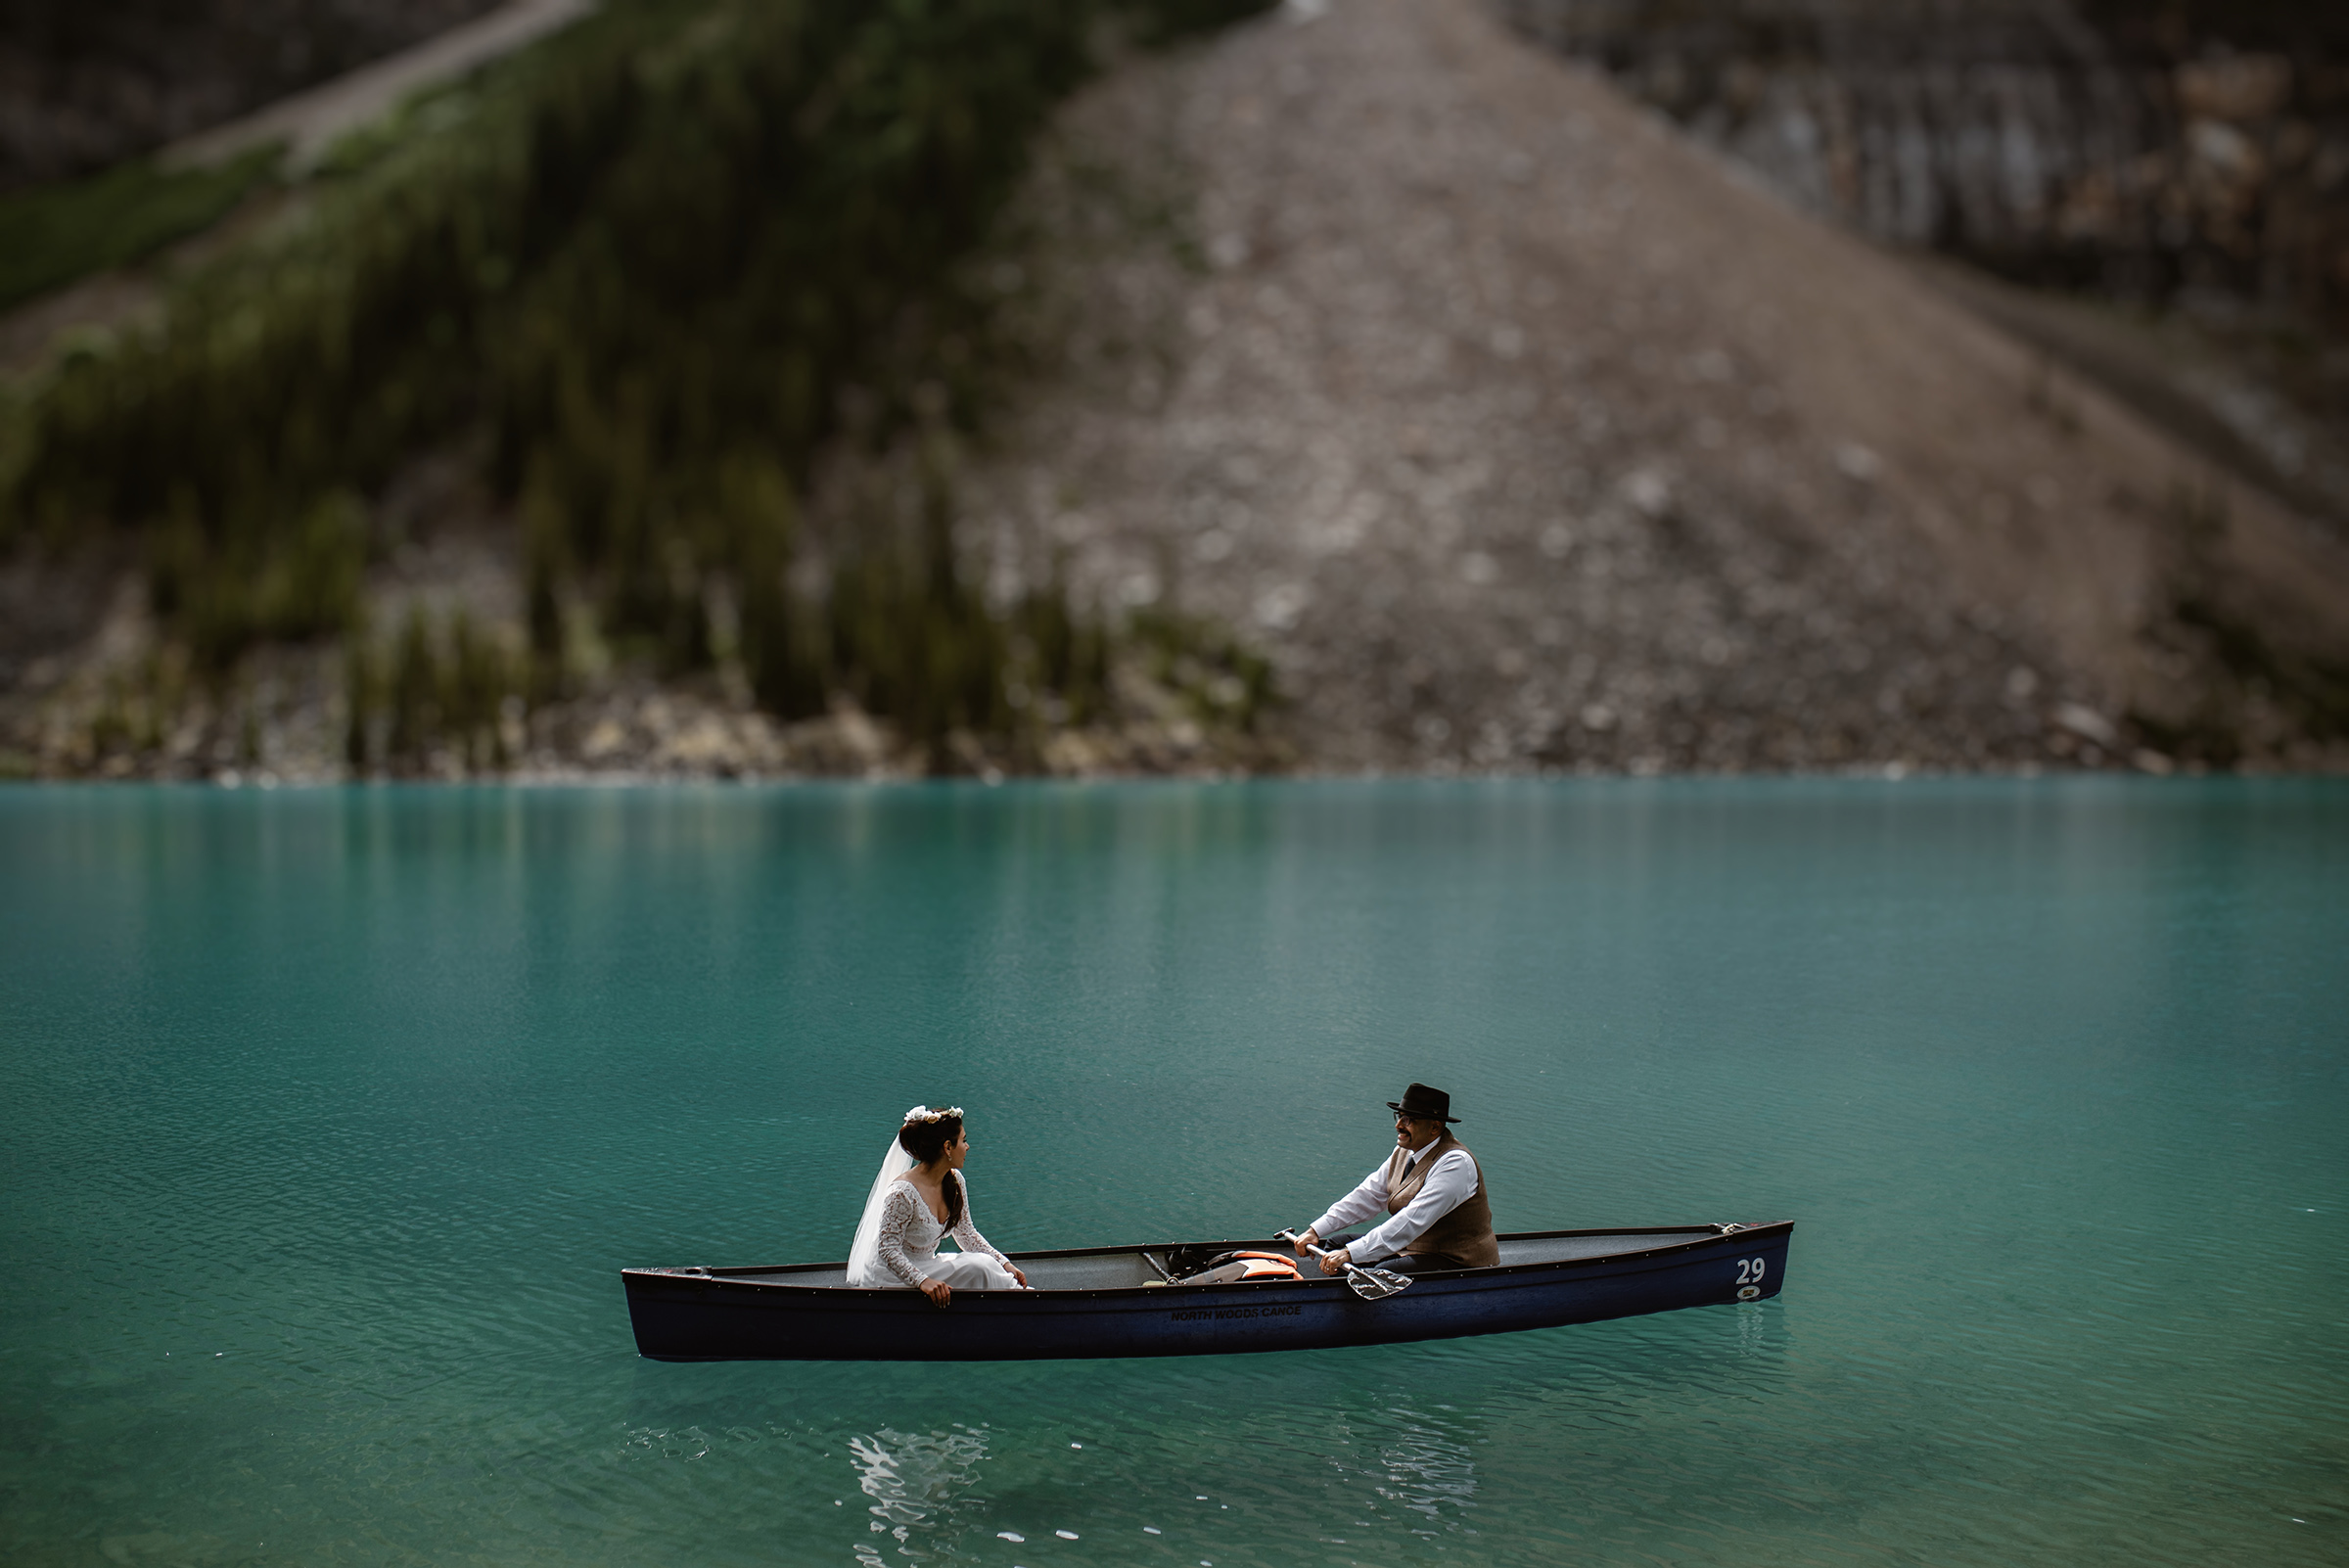 Elopement couple in canoe on water - photo by Virginia & Evan